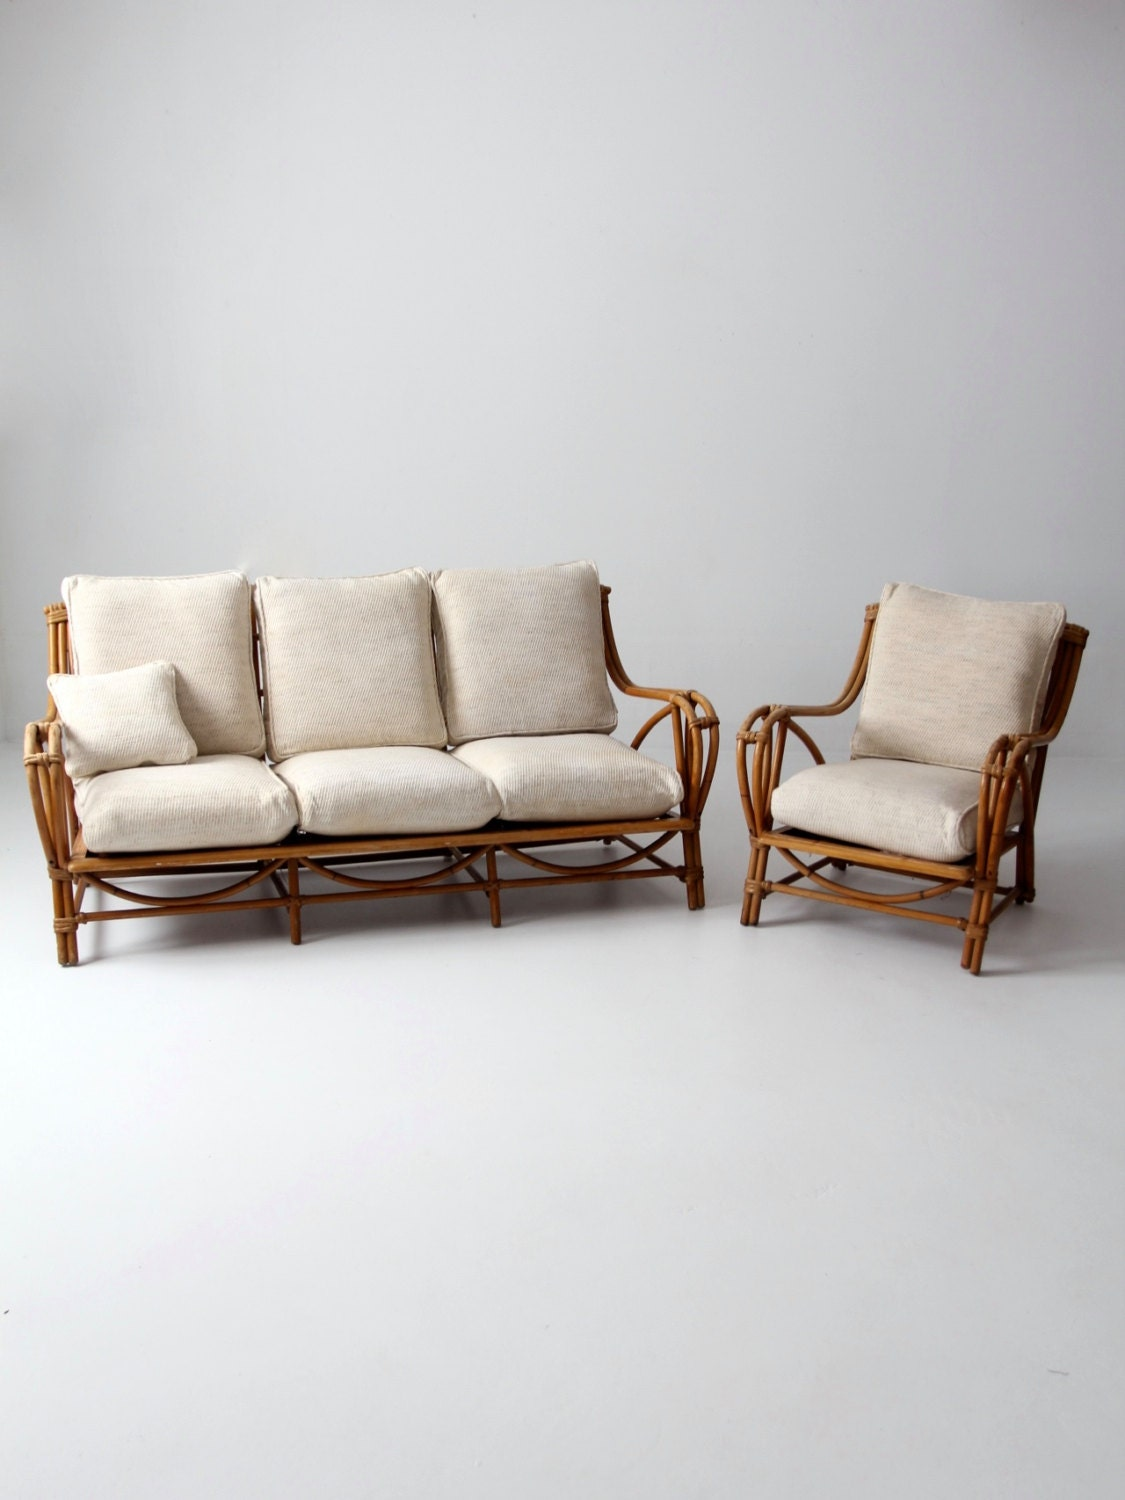 vintage rattan furniture set and chair bamboo with